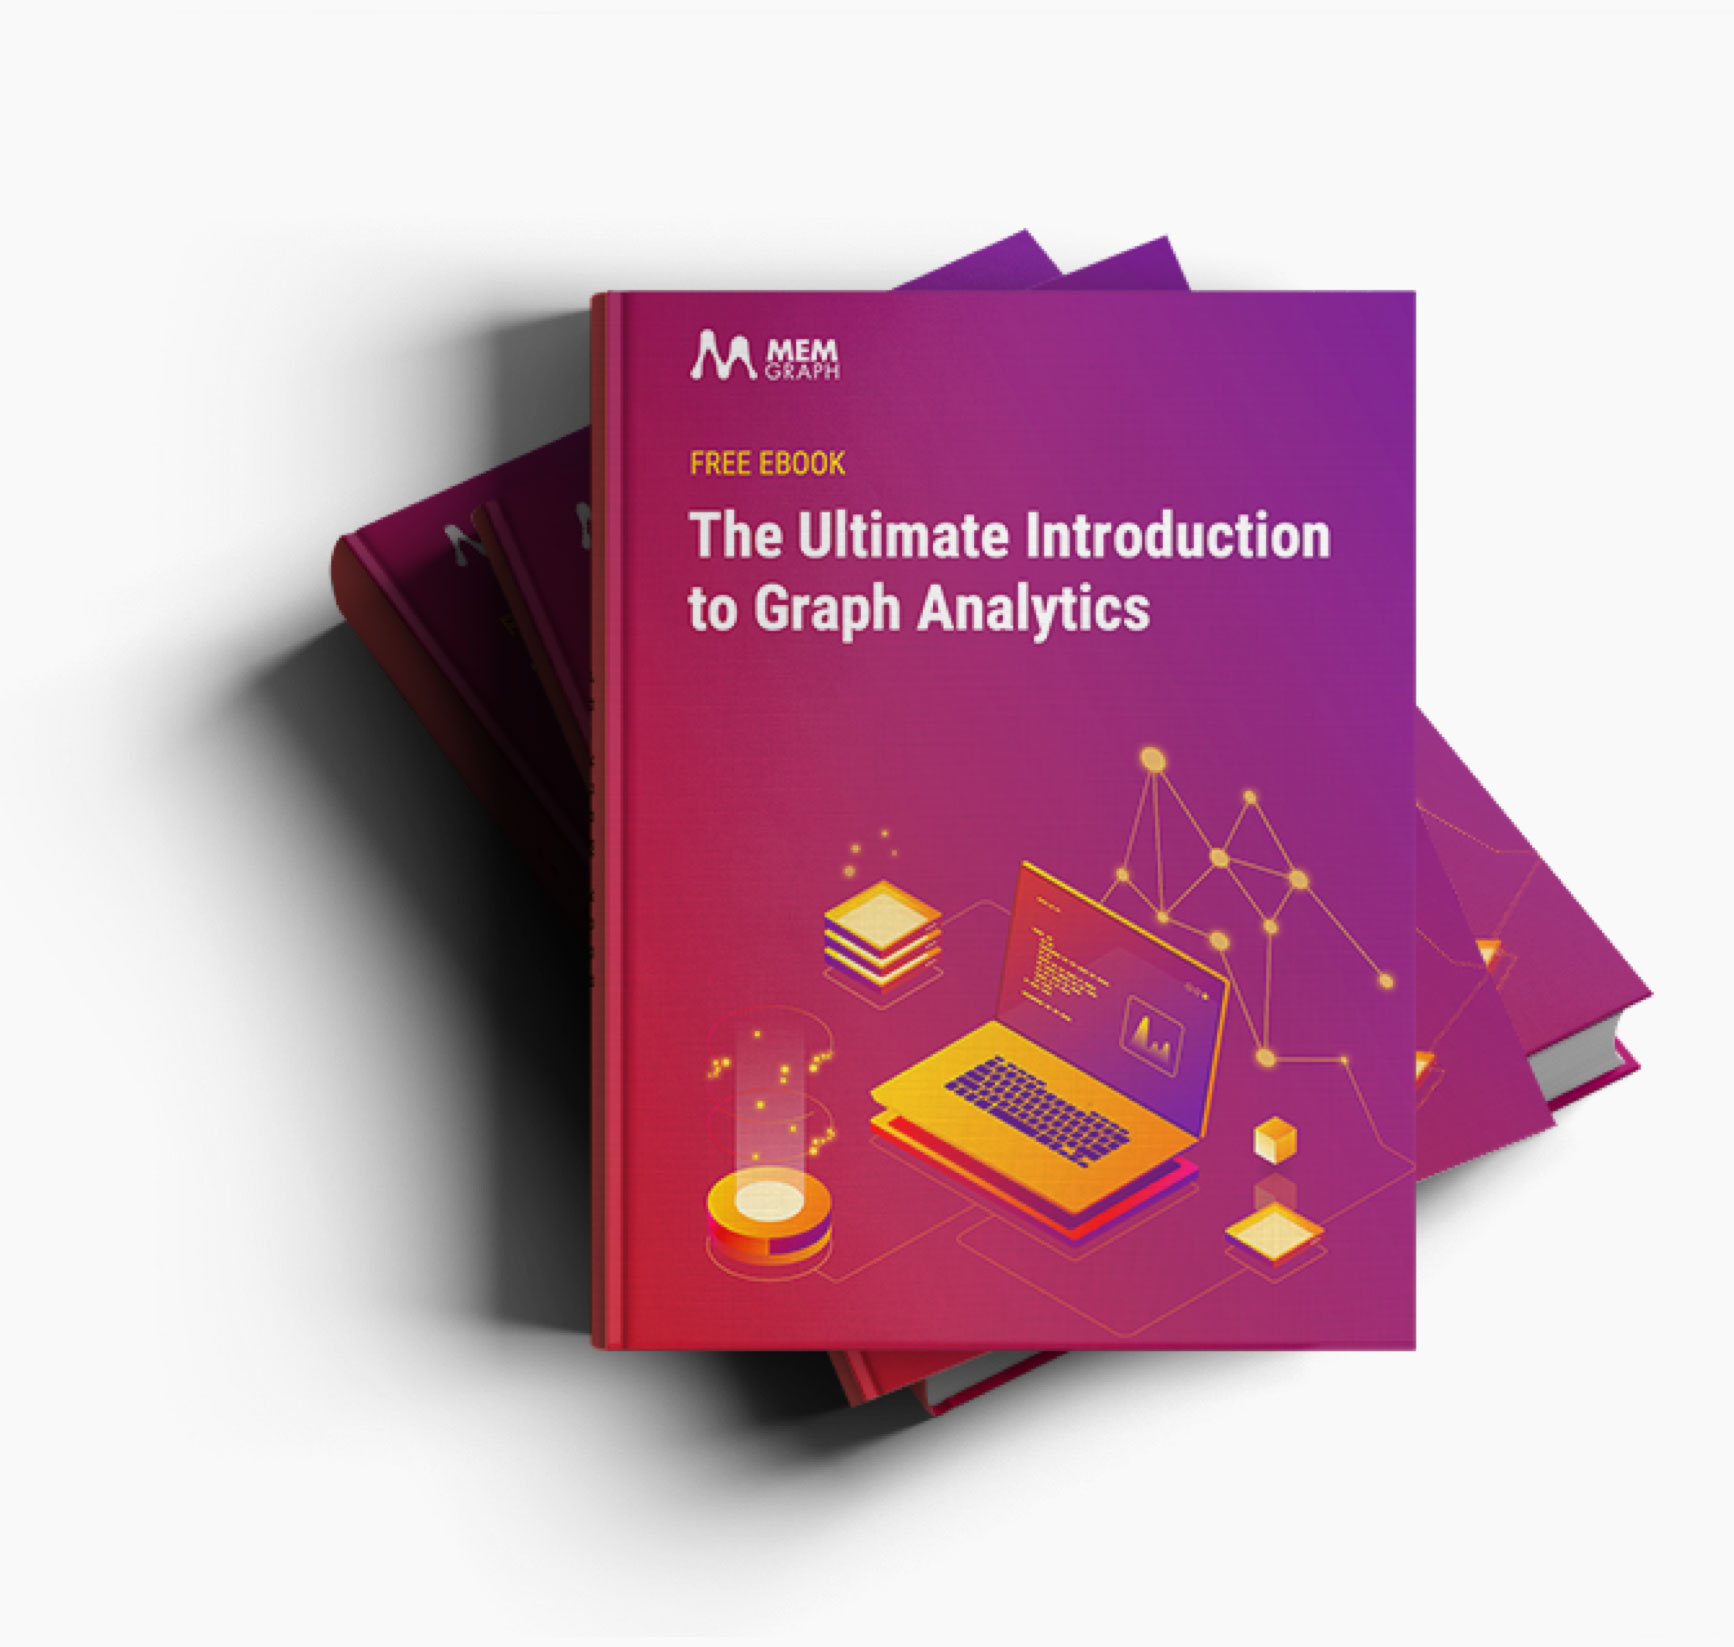 The Ultimate Introduction To Graph Analytics eBook graphic